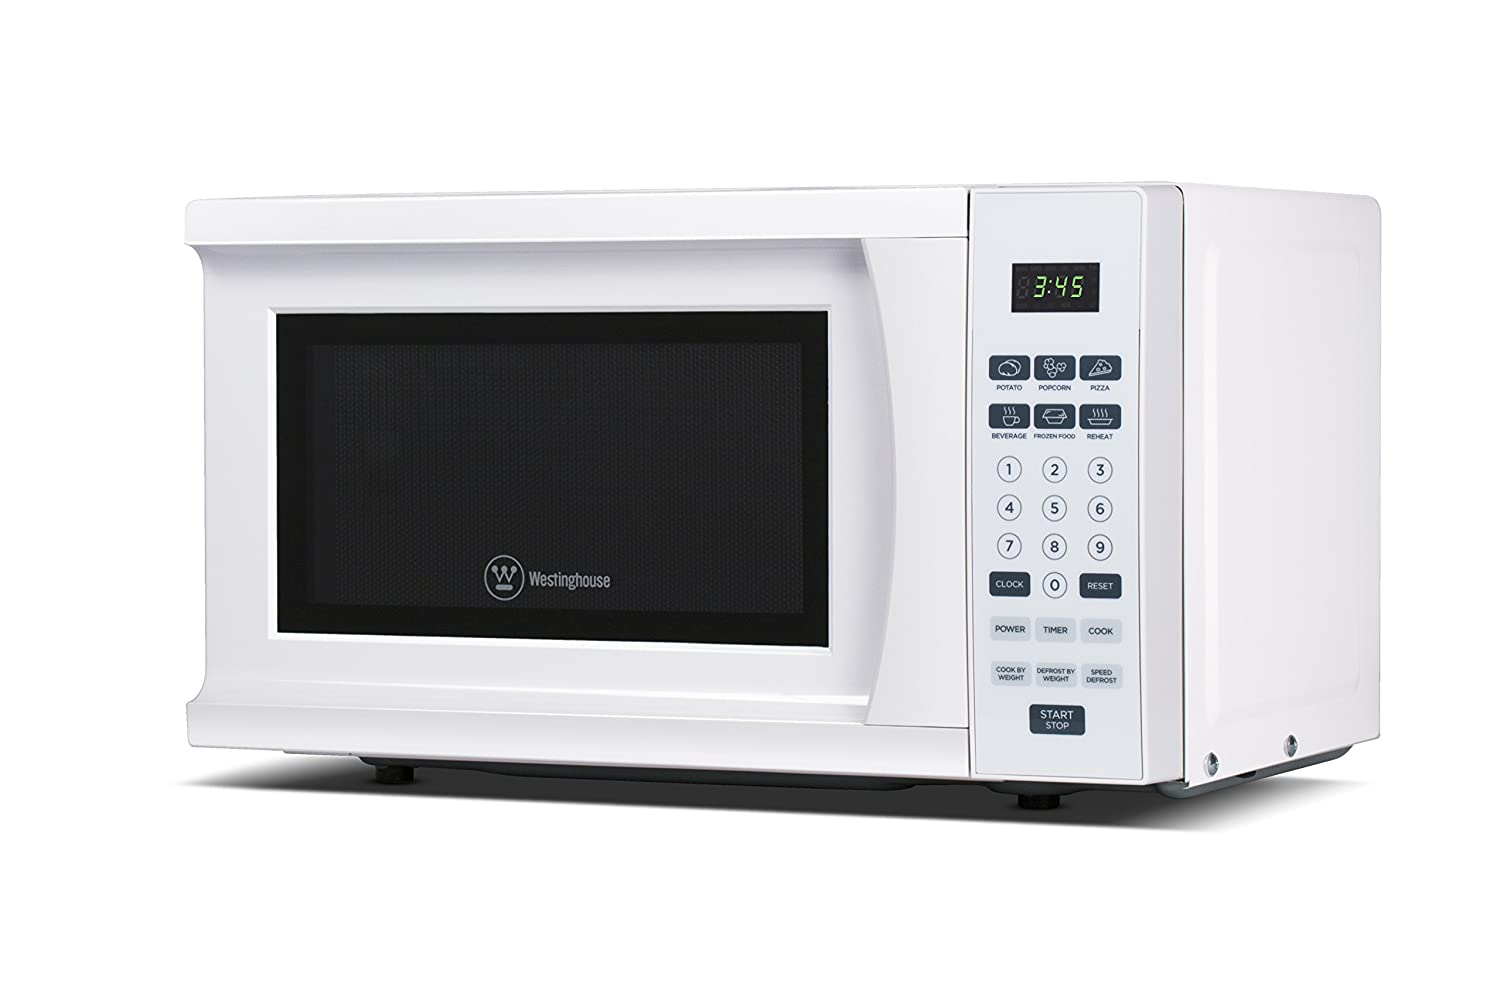 What Is The Smallest Size Of Microwave Oven Available On